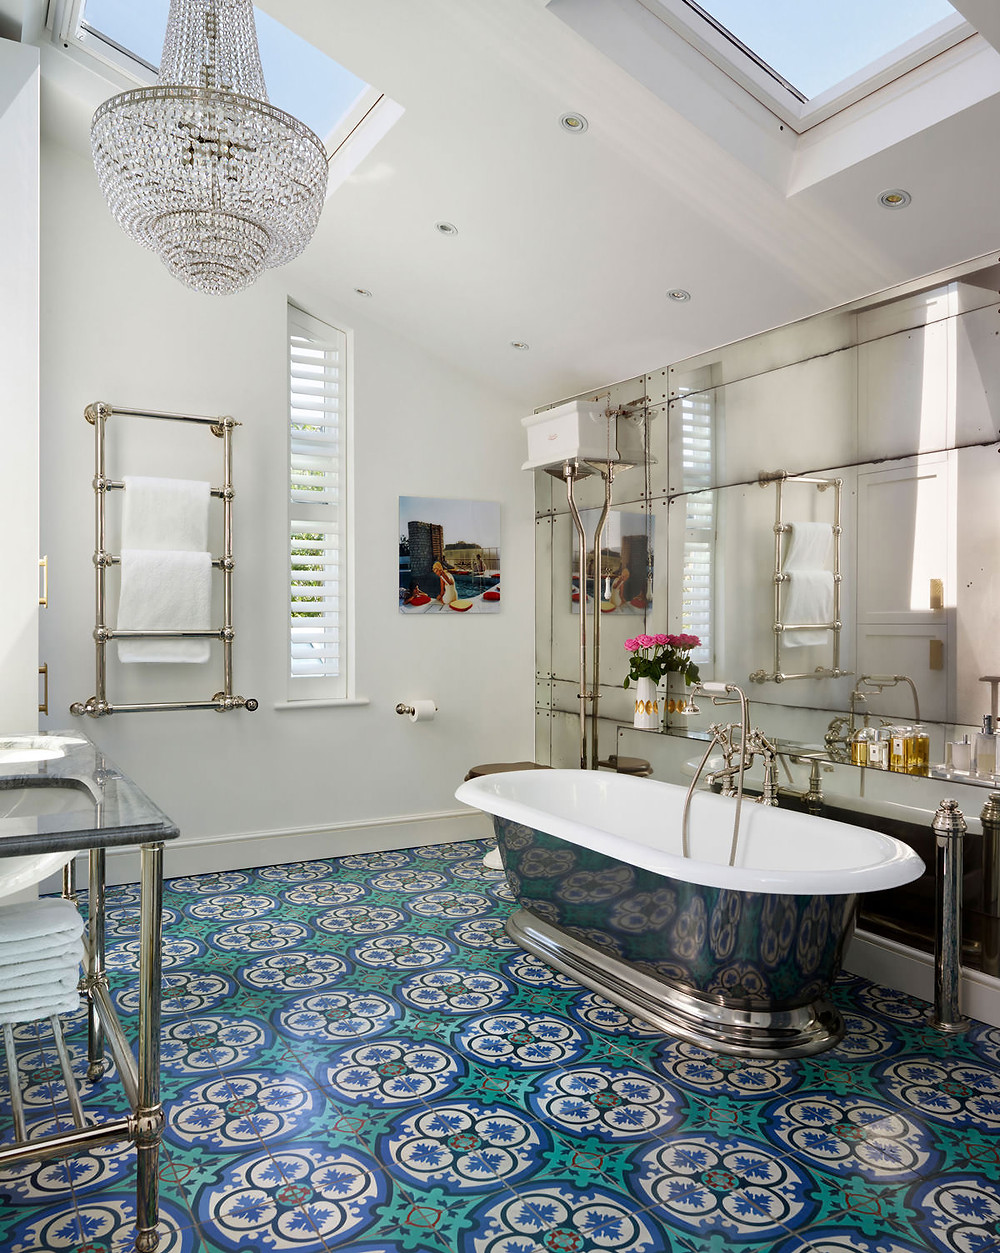 Luxury interiors: Vibrant Mediterranean-style tiles for an en suite in a Victorian terrace